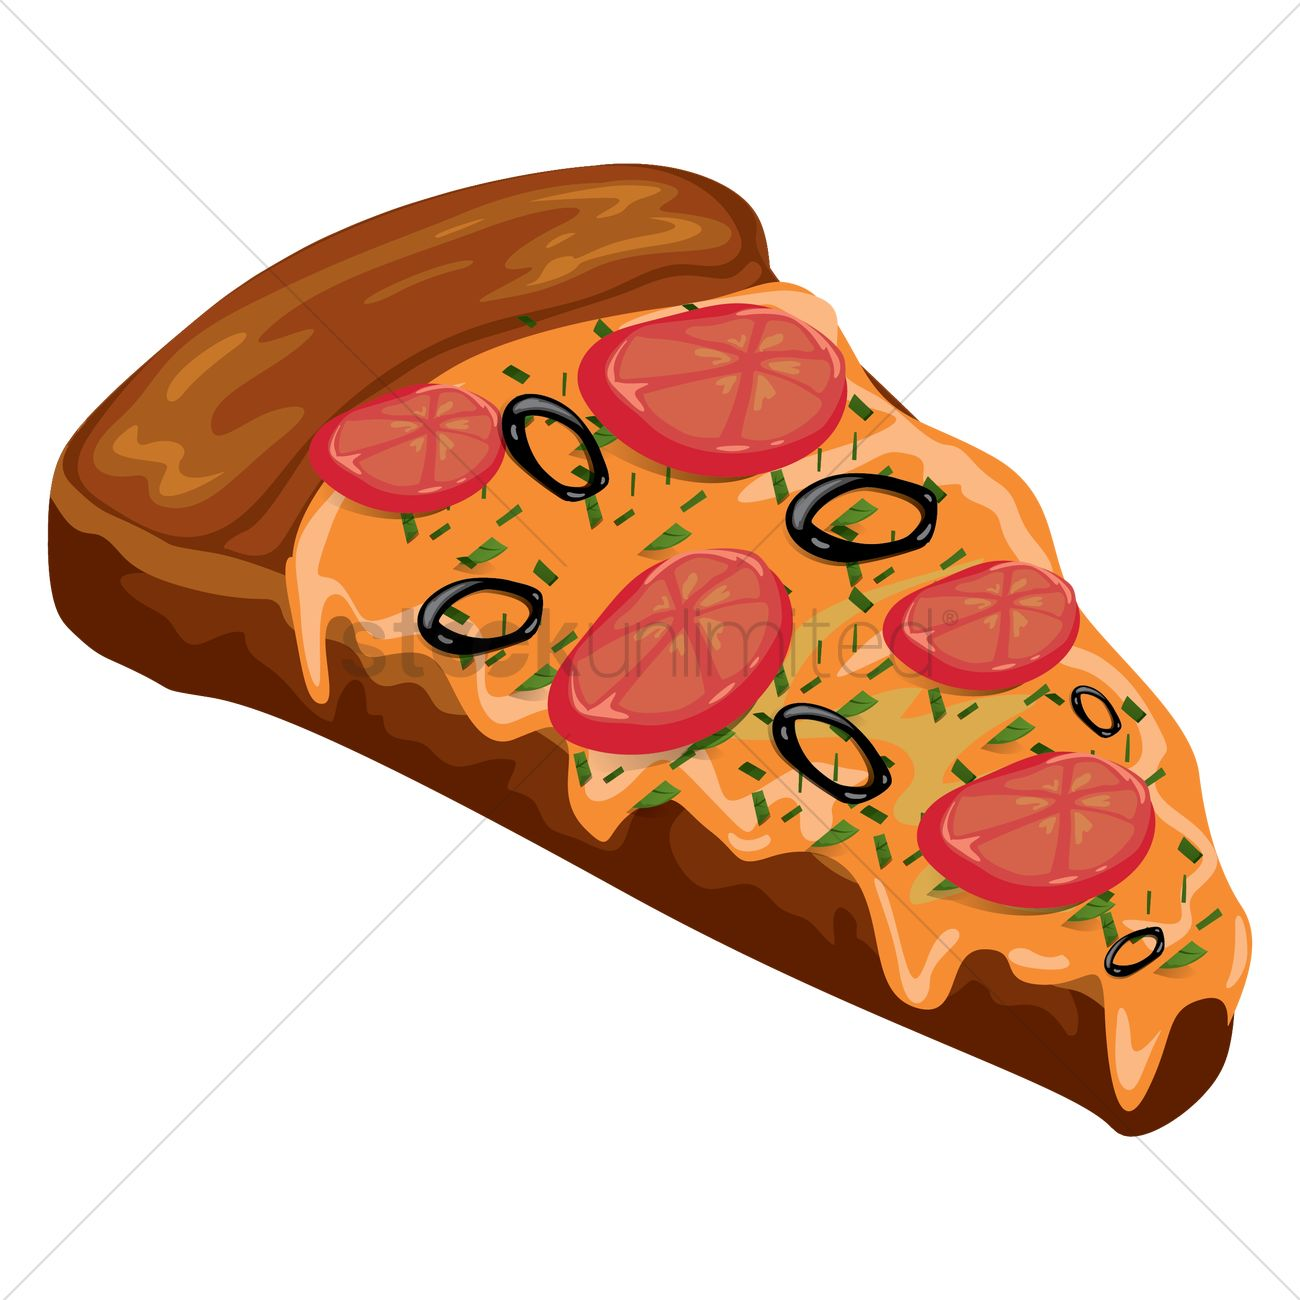 pizza slice vector image 1555861 stockunlimited rh stockunlimited com pizza slices free vector pizza slice outline vector